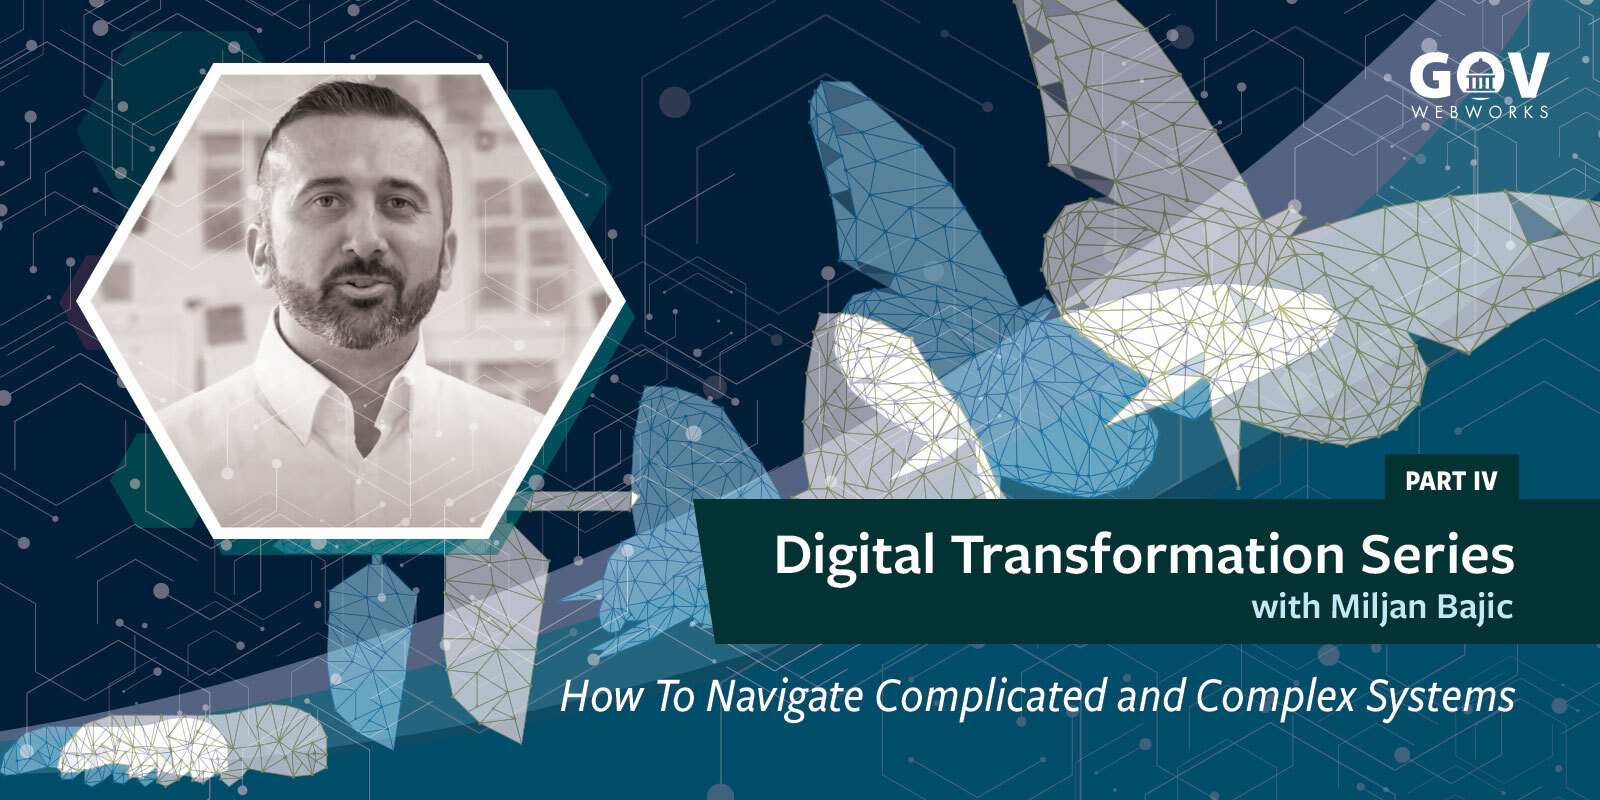 Digital Transformation Series: Part 4: How To Navigate Complicated and Complex Systems